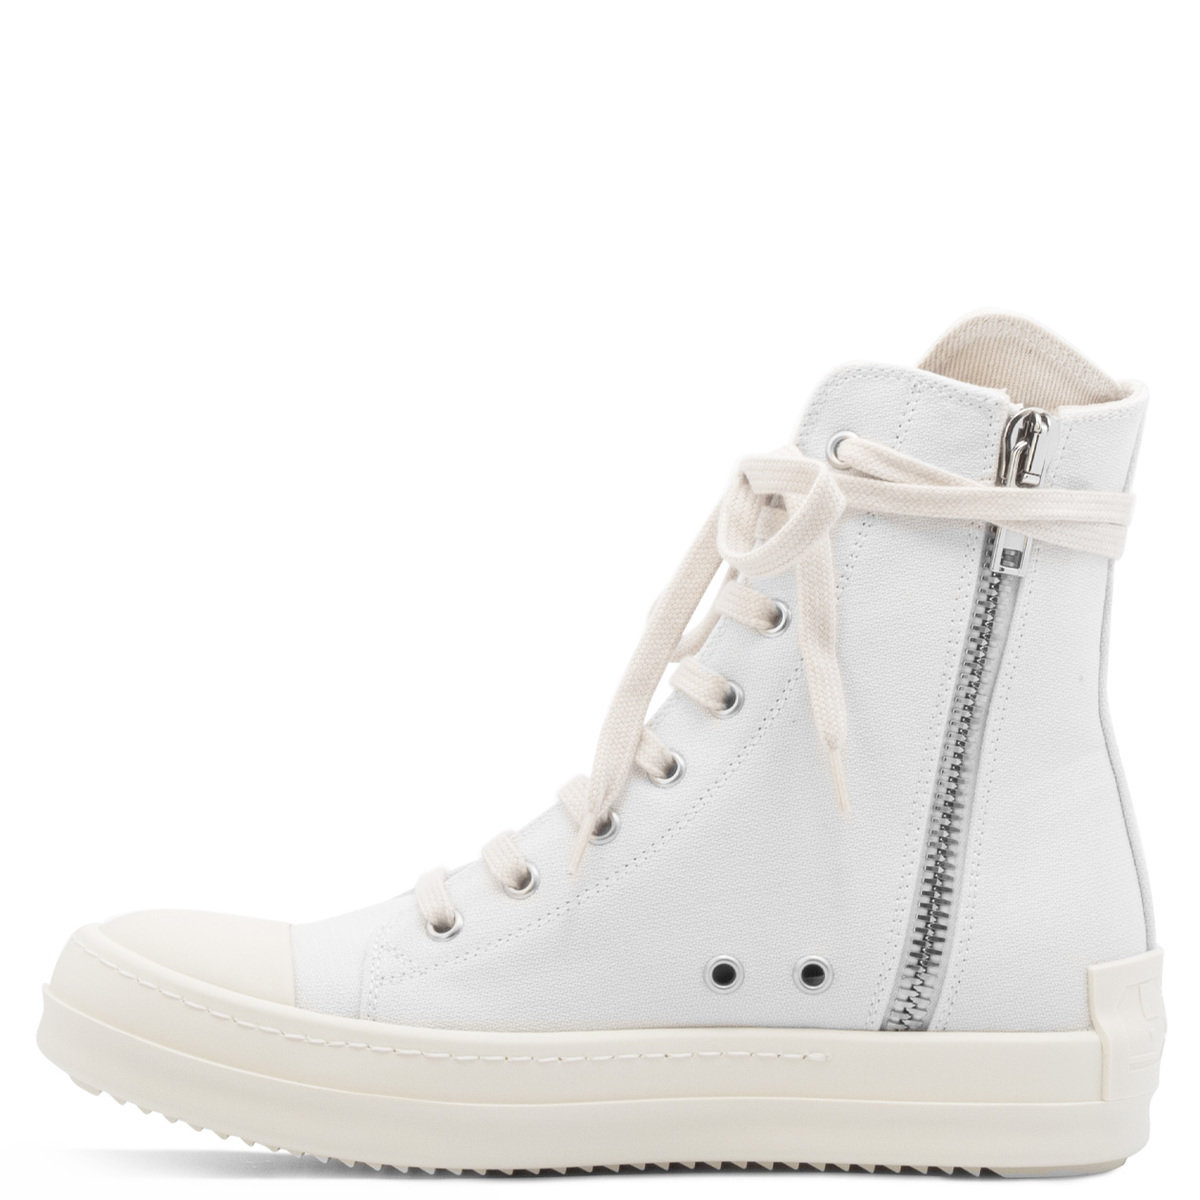 Rick Owens White High Top Sneakers DS21S2800 W